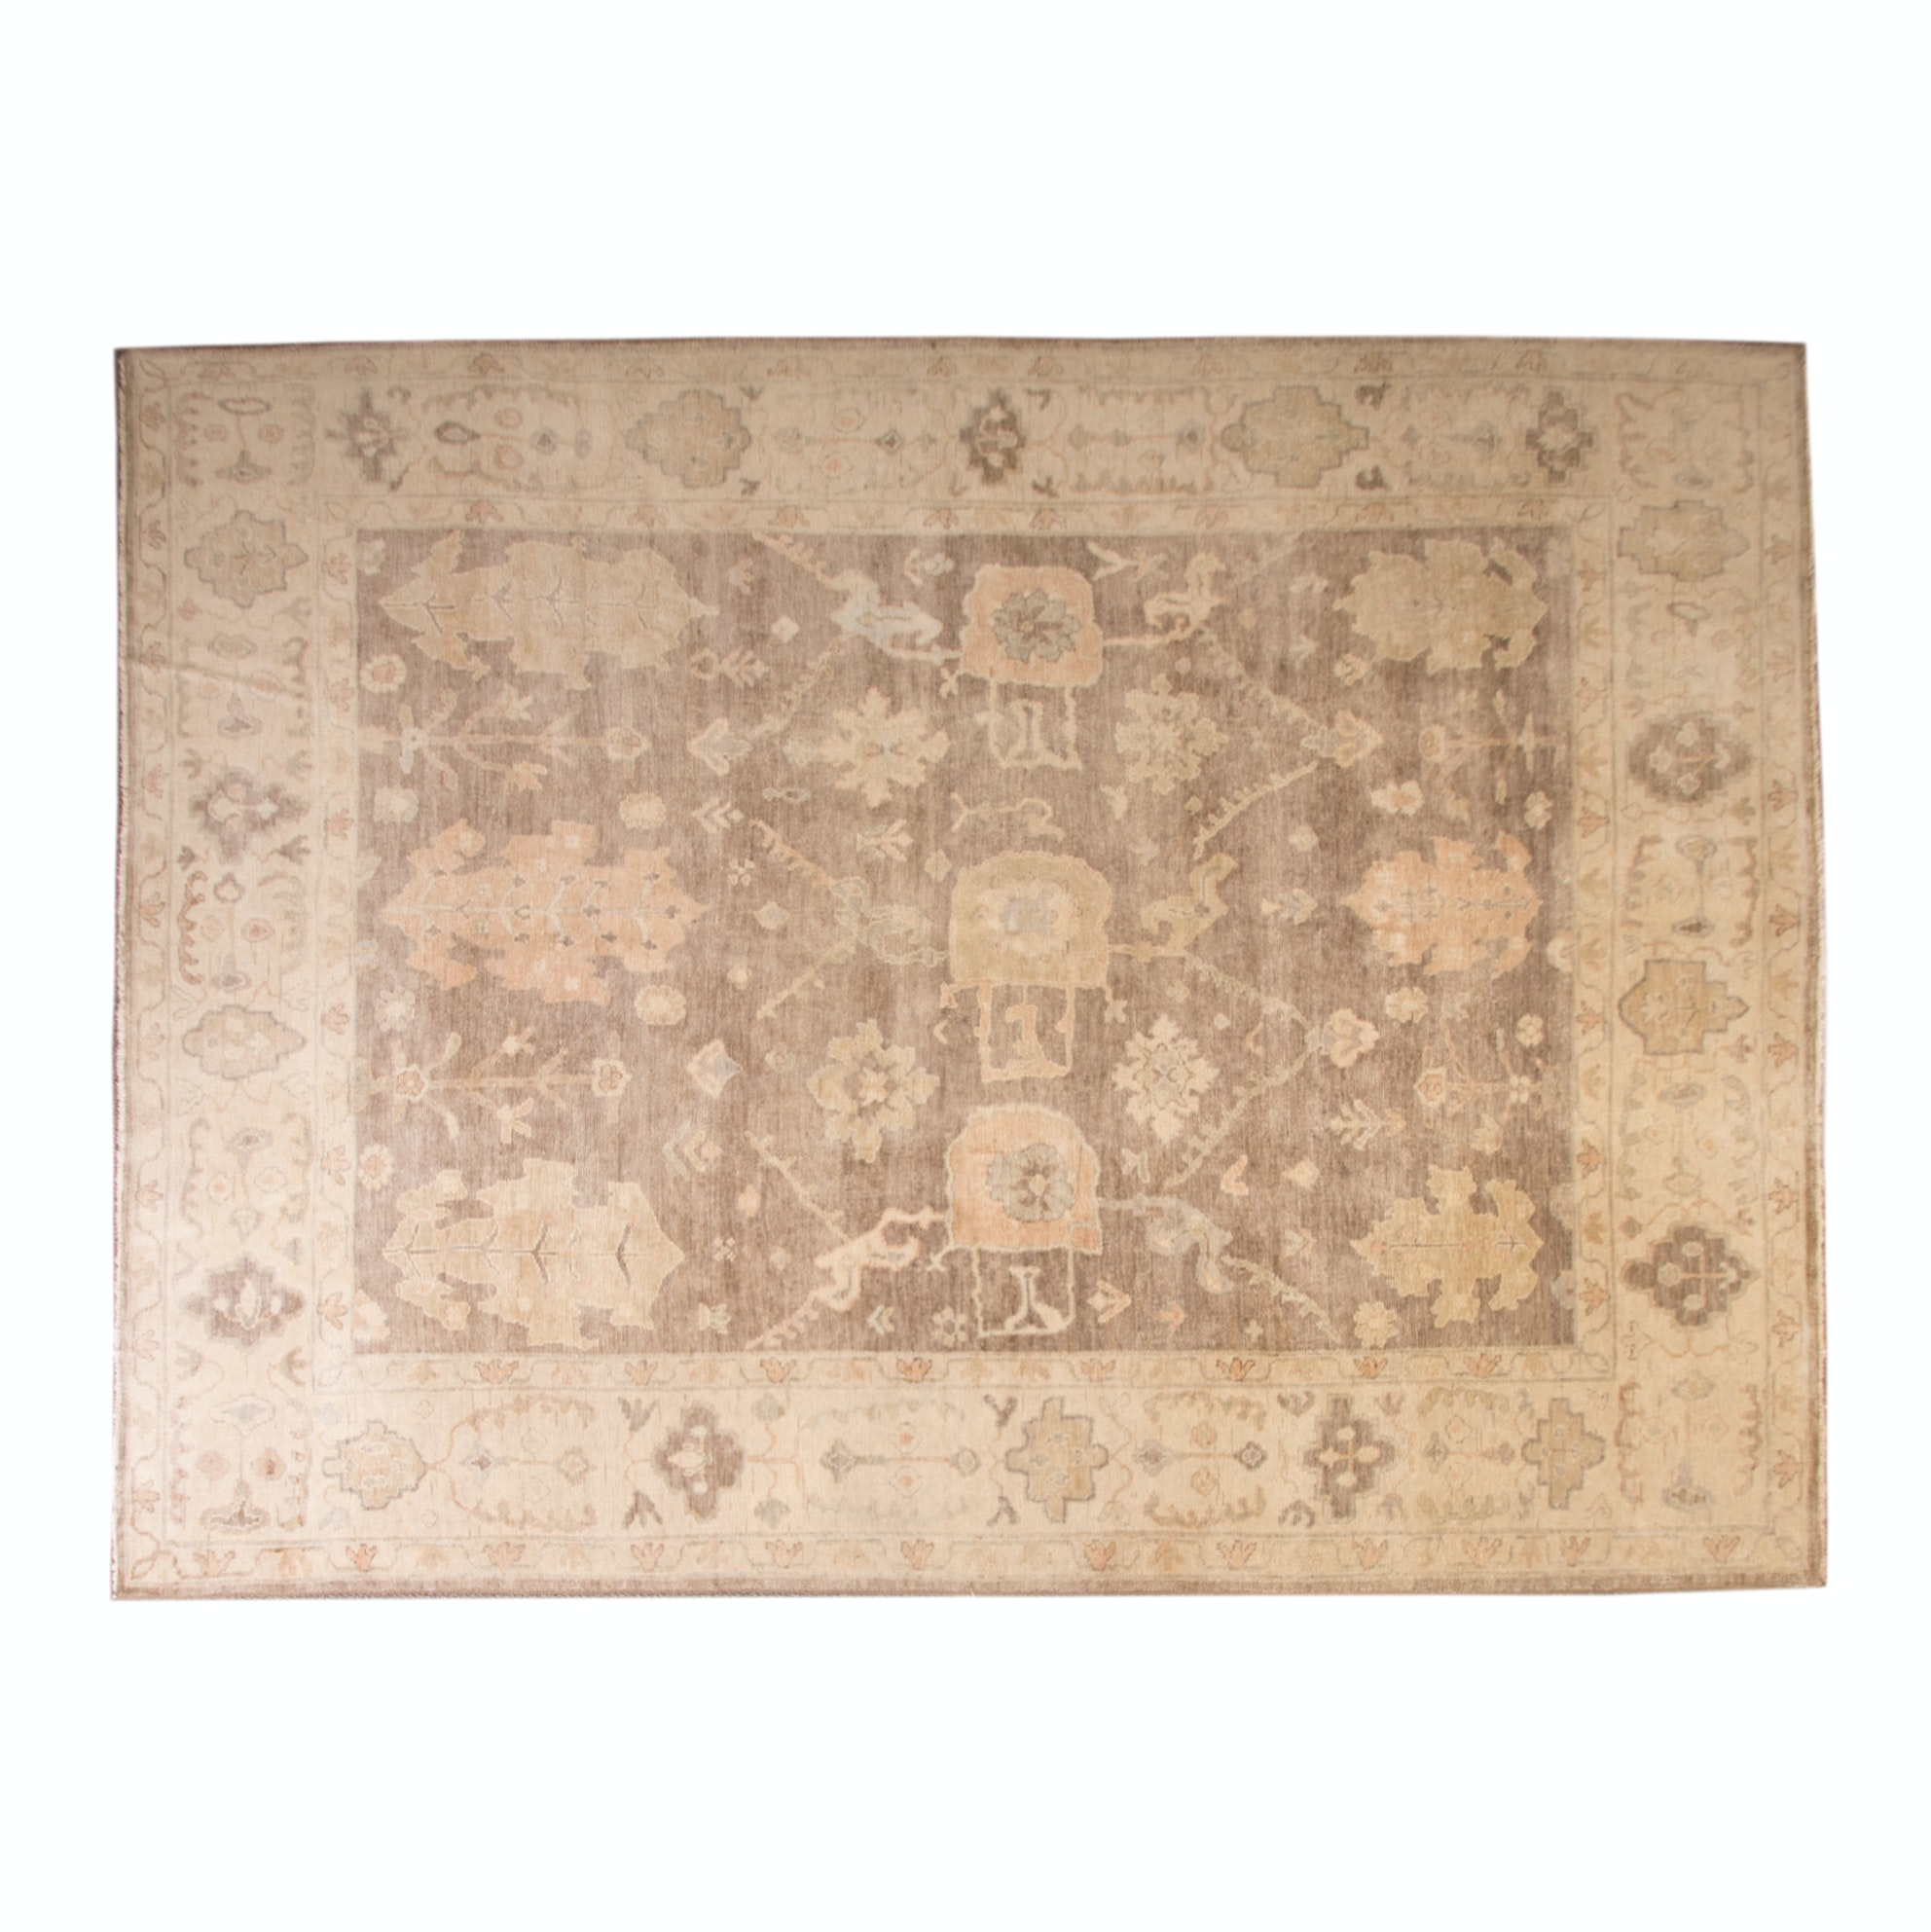 Hand Knotted Turkish Oushak Wool Area Rug